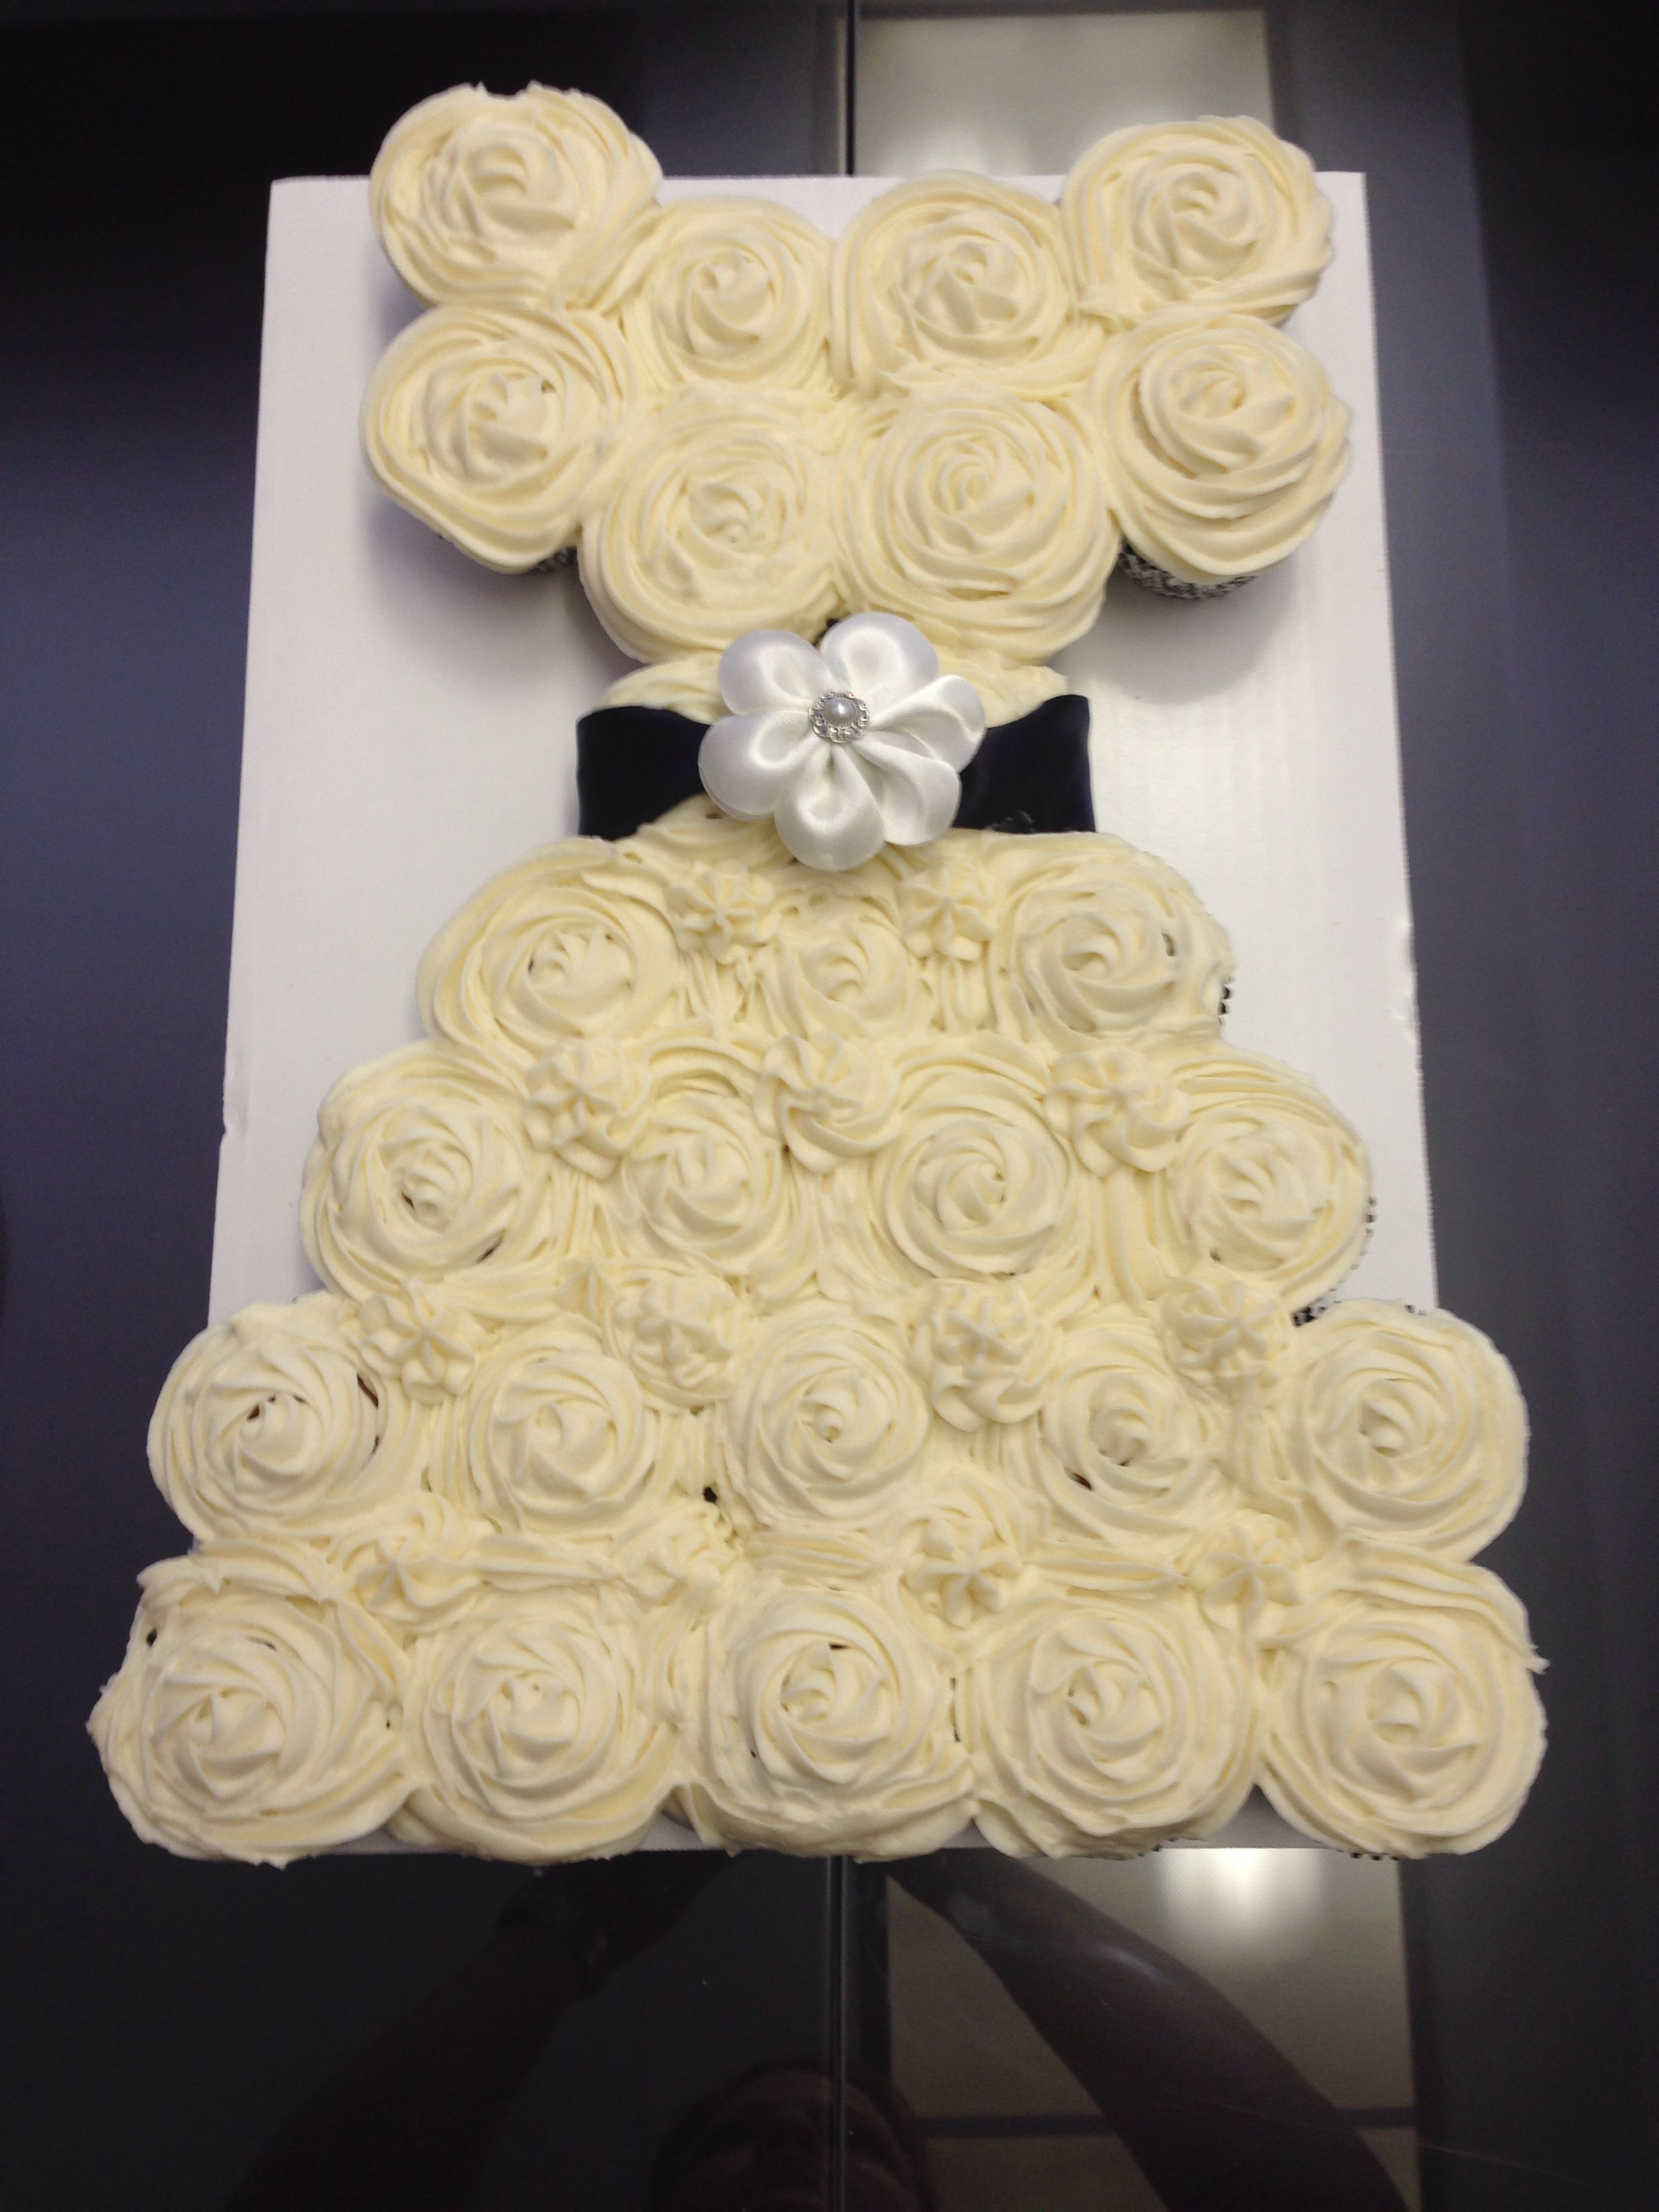 Pull apart wedding gown cupcakes. Hummingbird cake with cream cheese ...